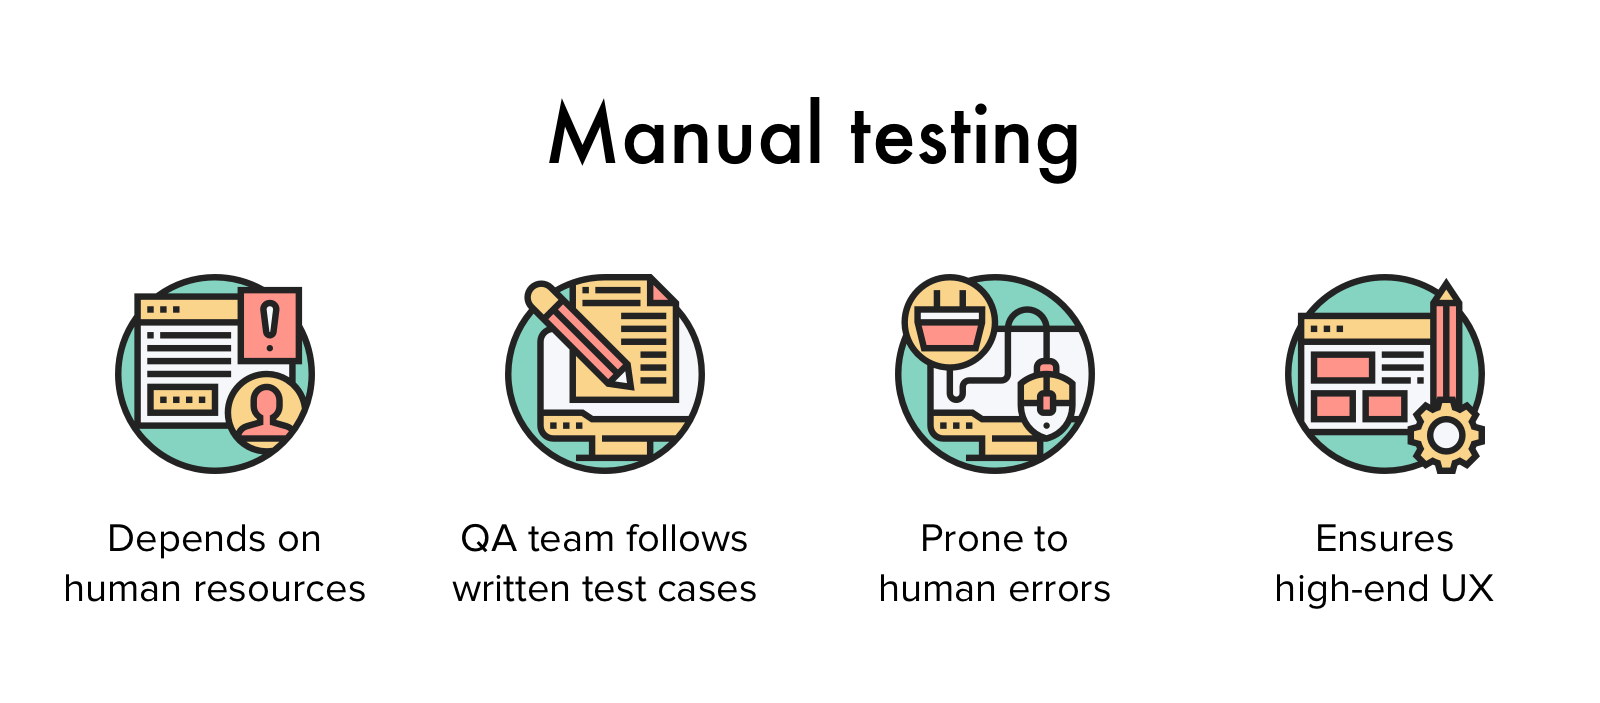 Manual testing how it works